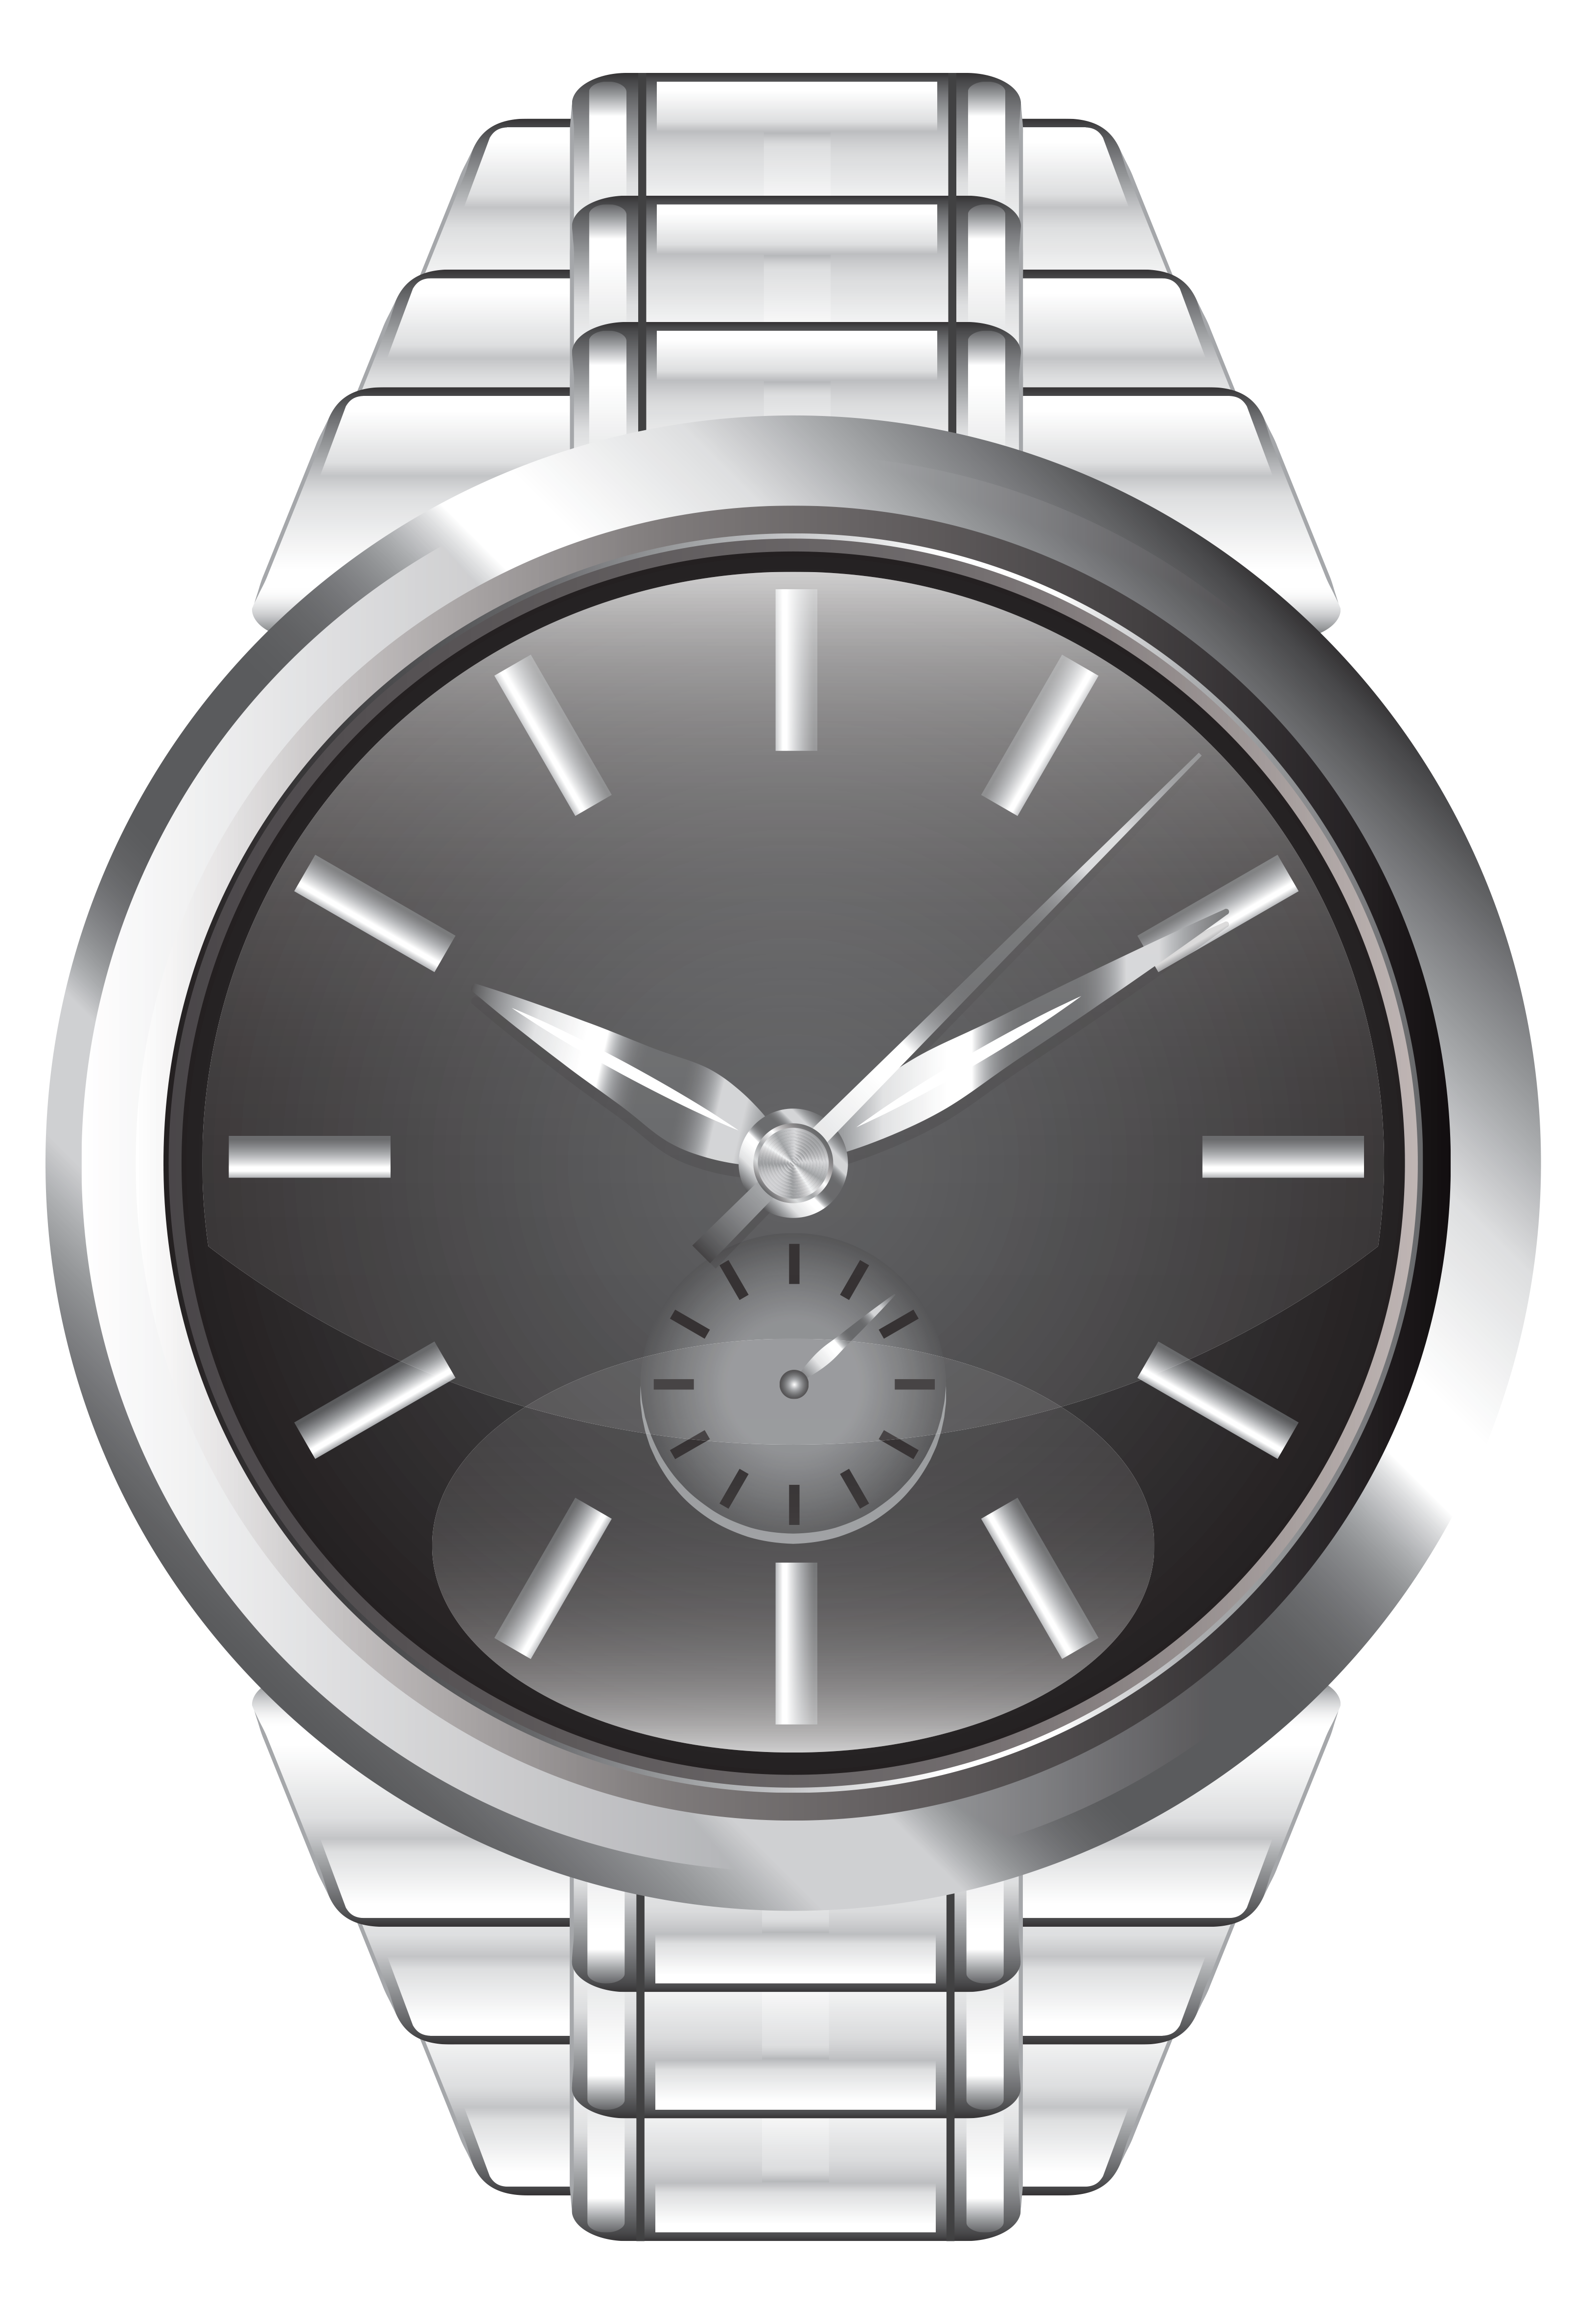 png black and white download Watch clipart. Wrist png clip art.